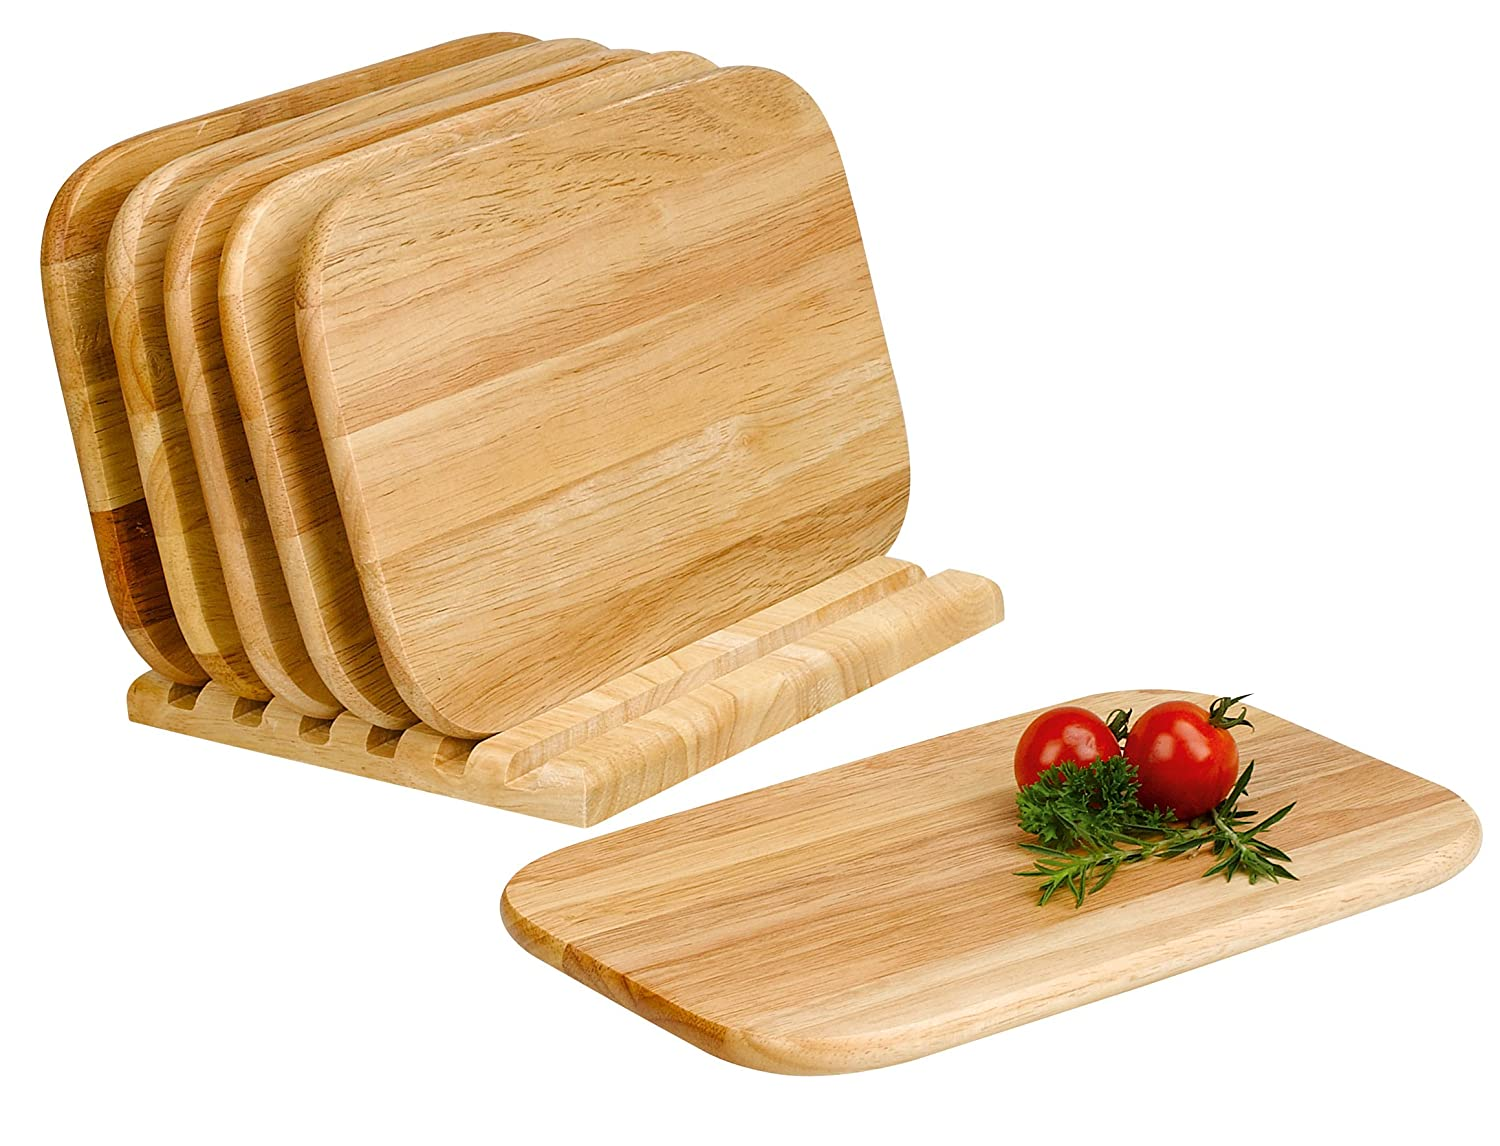 Domestic 906240 7 Piece Chopping Board Holder Set Light Shade with Wooden Handle